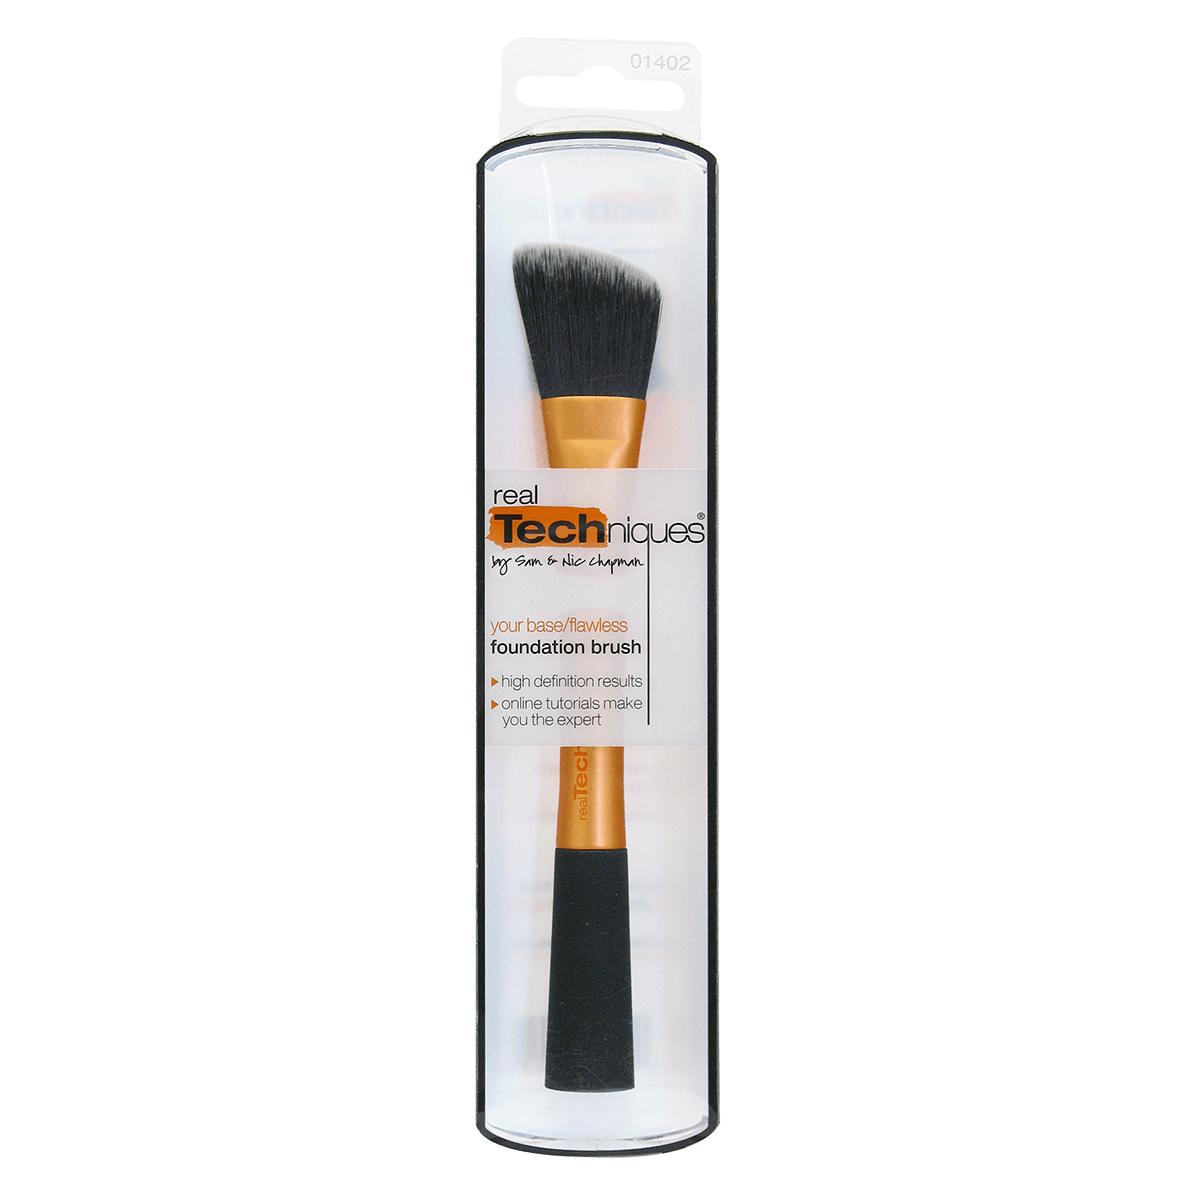 Real Techniques - 1402 Foundation Brush